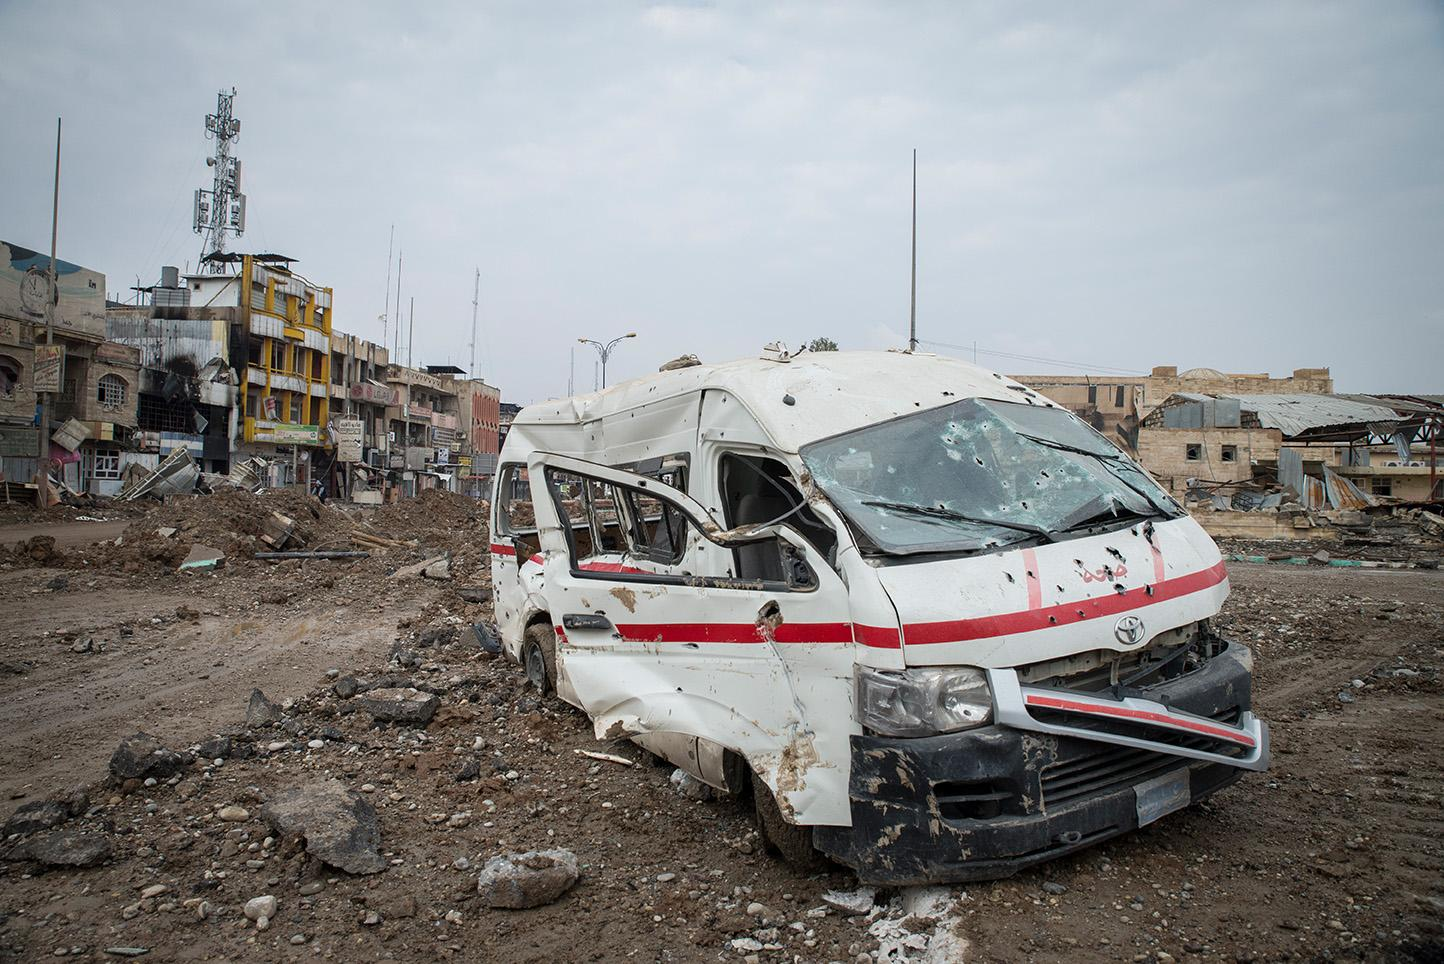 A broken down ambulance in the Al-Sukar neighborhood of eastern Mosul. For more than two and half years Mosul, Iraq's second largest city has been under the control of the Islamic State of Iraq and the Levant (Isil). Since October of 2016, Iraq Special Forces have been fighting to take back the city of Mosul from ISIS. On January 24, 2017 the Prime Minister of Iraq declared the entire east side of Mosul had been fully liberated. An offense to take back the west side has yet to begin. According to the United Nations, 750,000 civilians are living under Islamic State control in western Mosul.